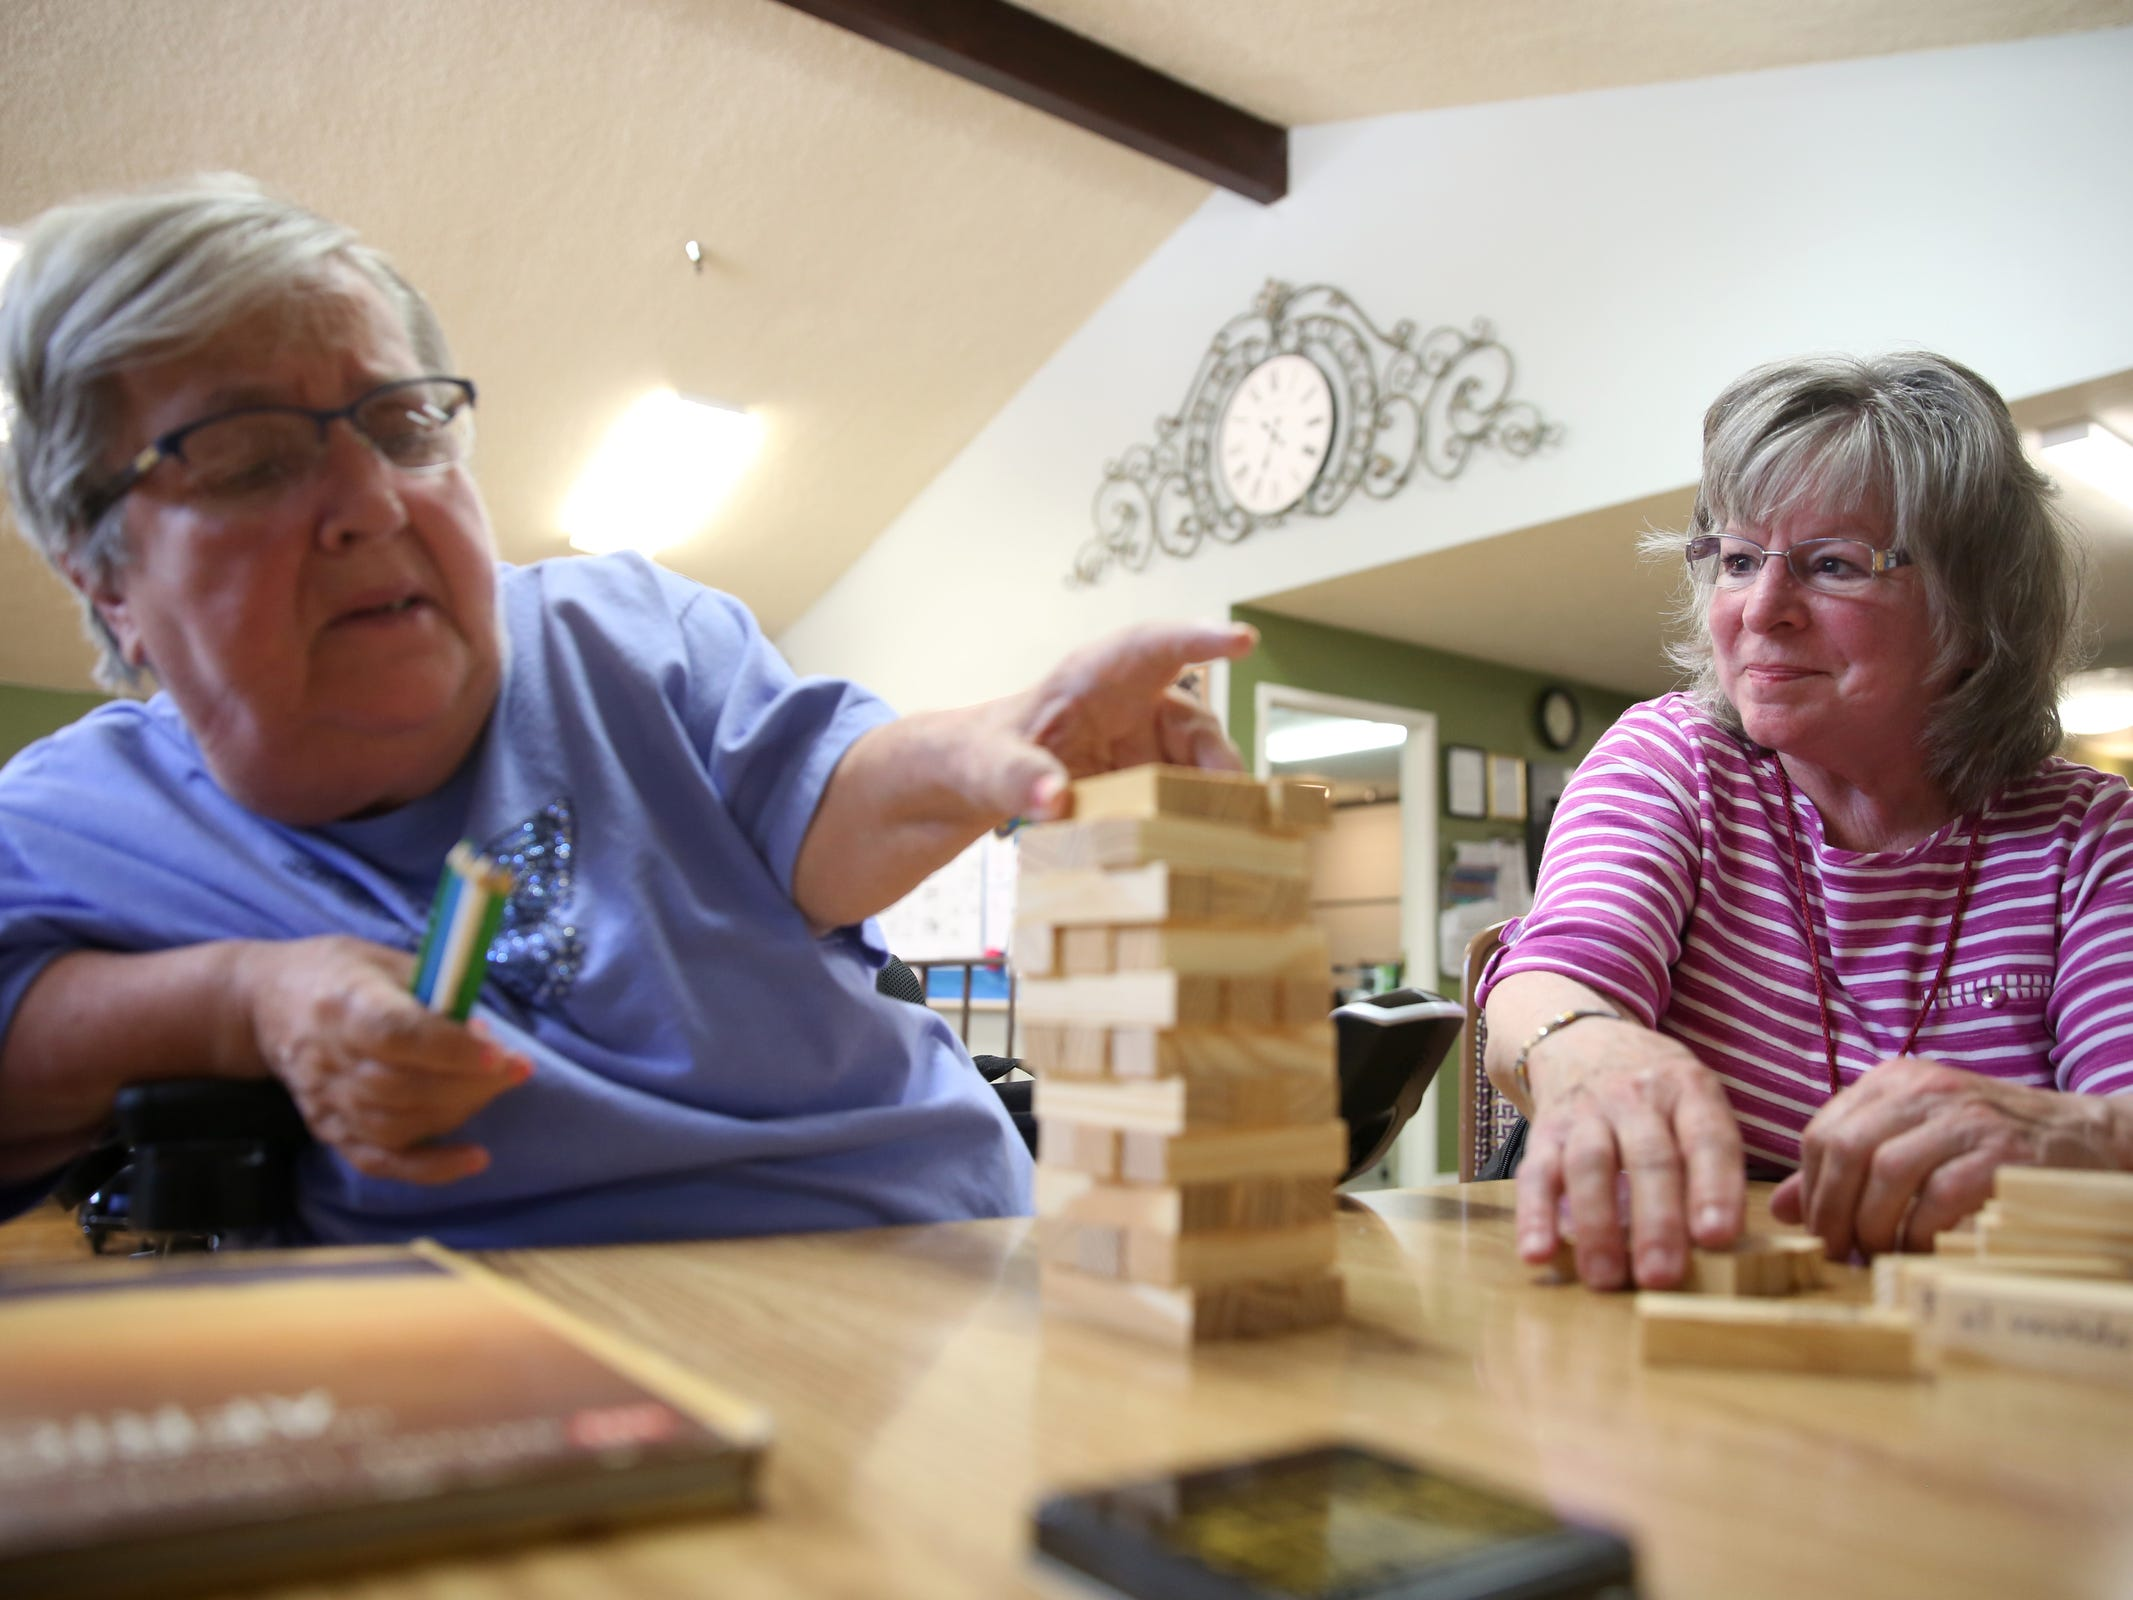 Volunteer Anita Felion, right, plays a game with Lucy Buntjer during a visit by the Friendship Brigade, a group of volunteers that focuses on spreading awareness about senior isolation and loneliness, at The Oaks at Sherwood Park in in Keizer on May 9, 2019.